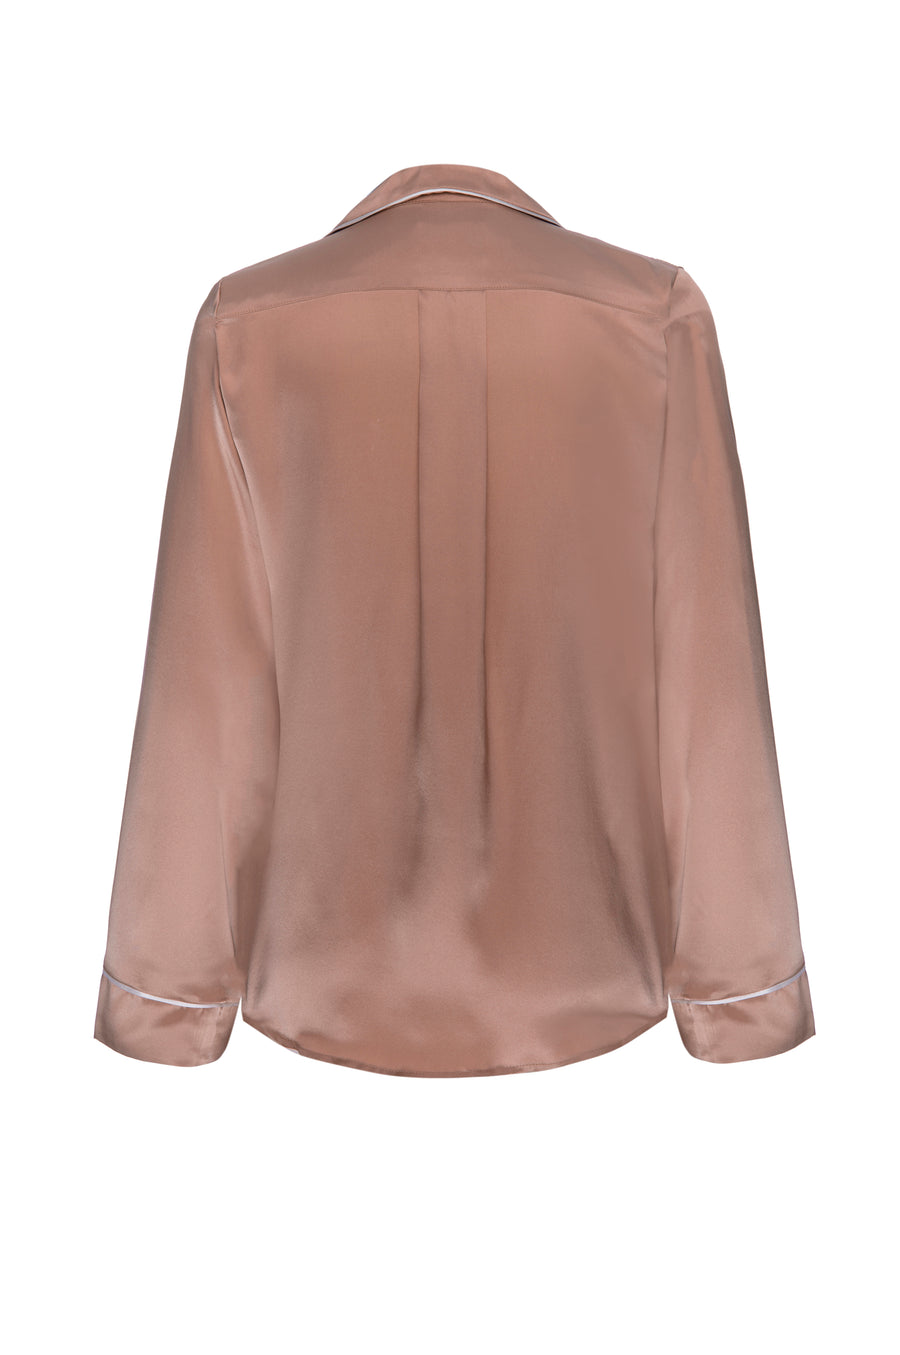 Silk Charmeuse Long Sleeved Top: Apricot